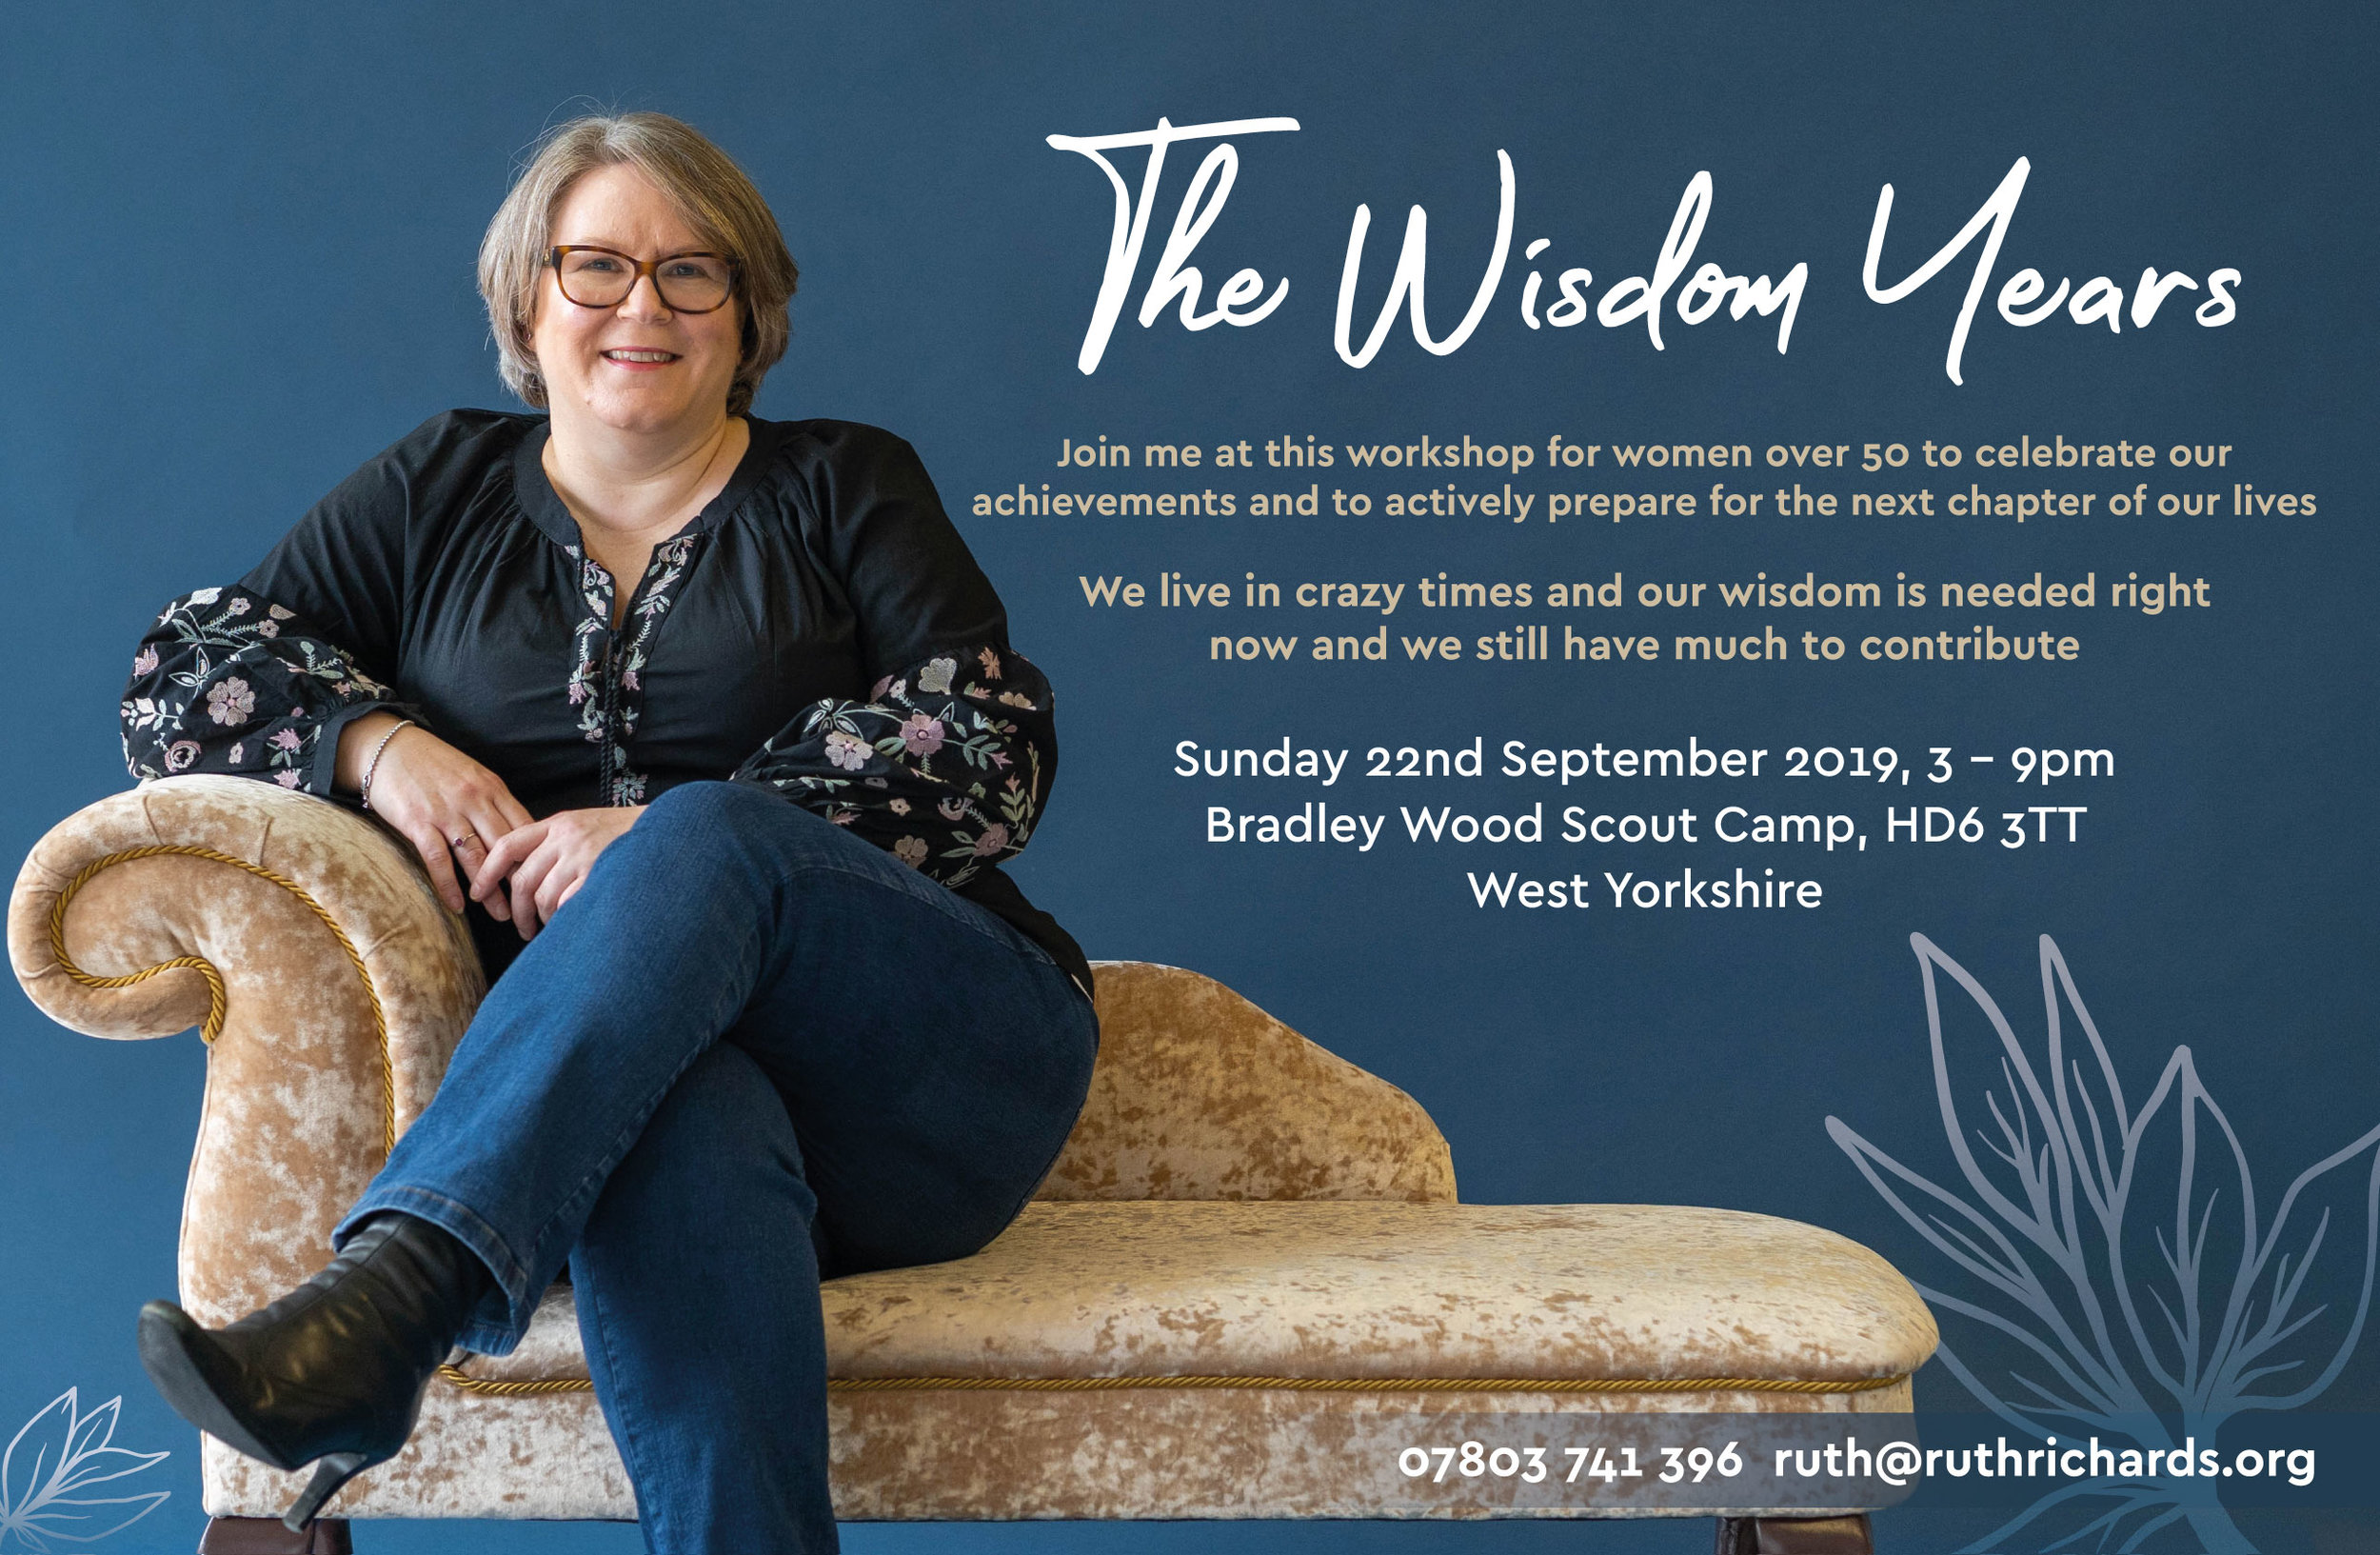 The Wisdom Years Workshop       Sunday 22nd September 3-9pm - Click here to registerREGISTER BY 30TH AUGUST FOR EARLY BIRD PRICE OF £300 (INSTEAD OF £400).EMAIL RUTH@RUTHRICHARDS.ORG TO REGISTER FOR THE EARLY BIRD OFFER